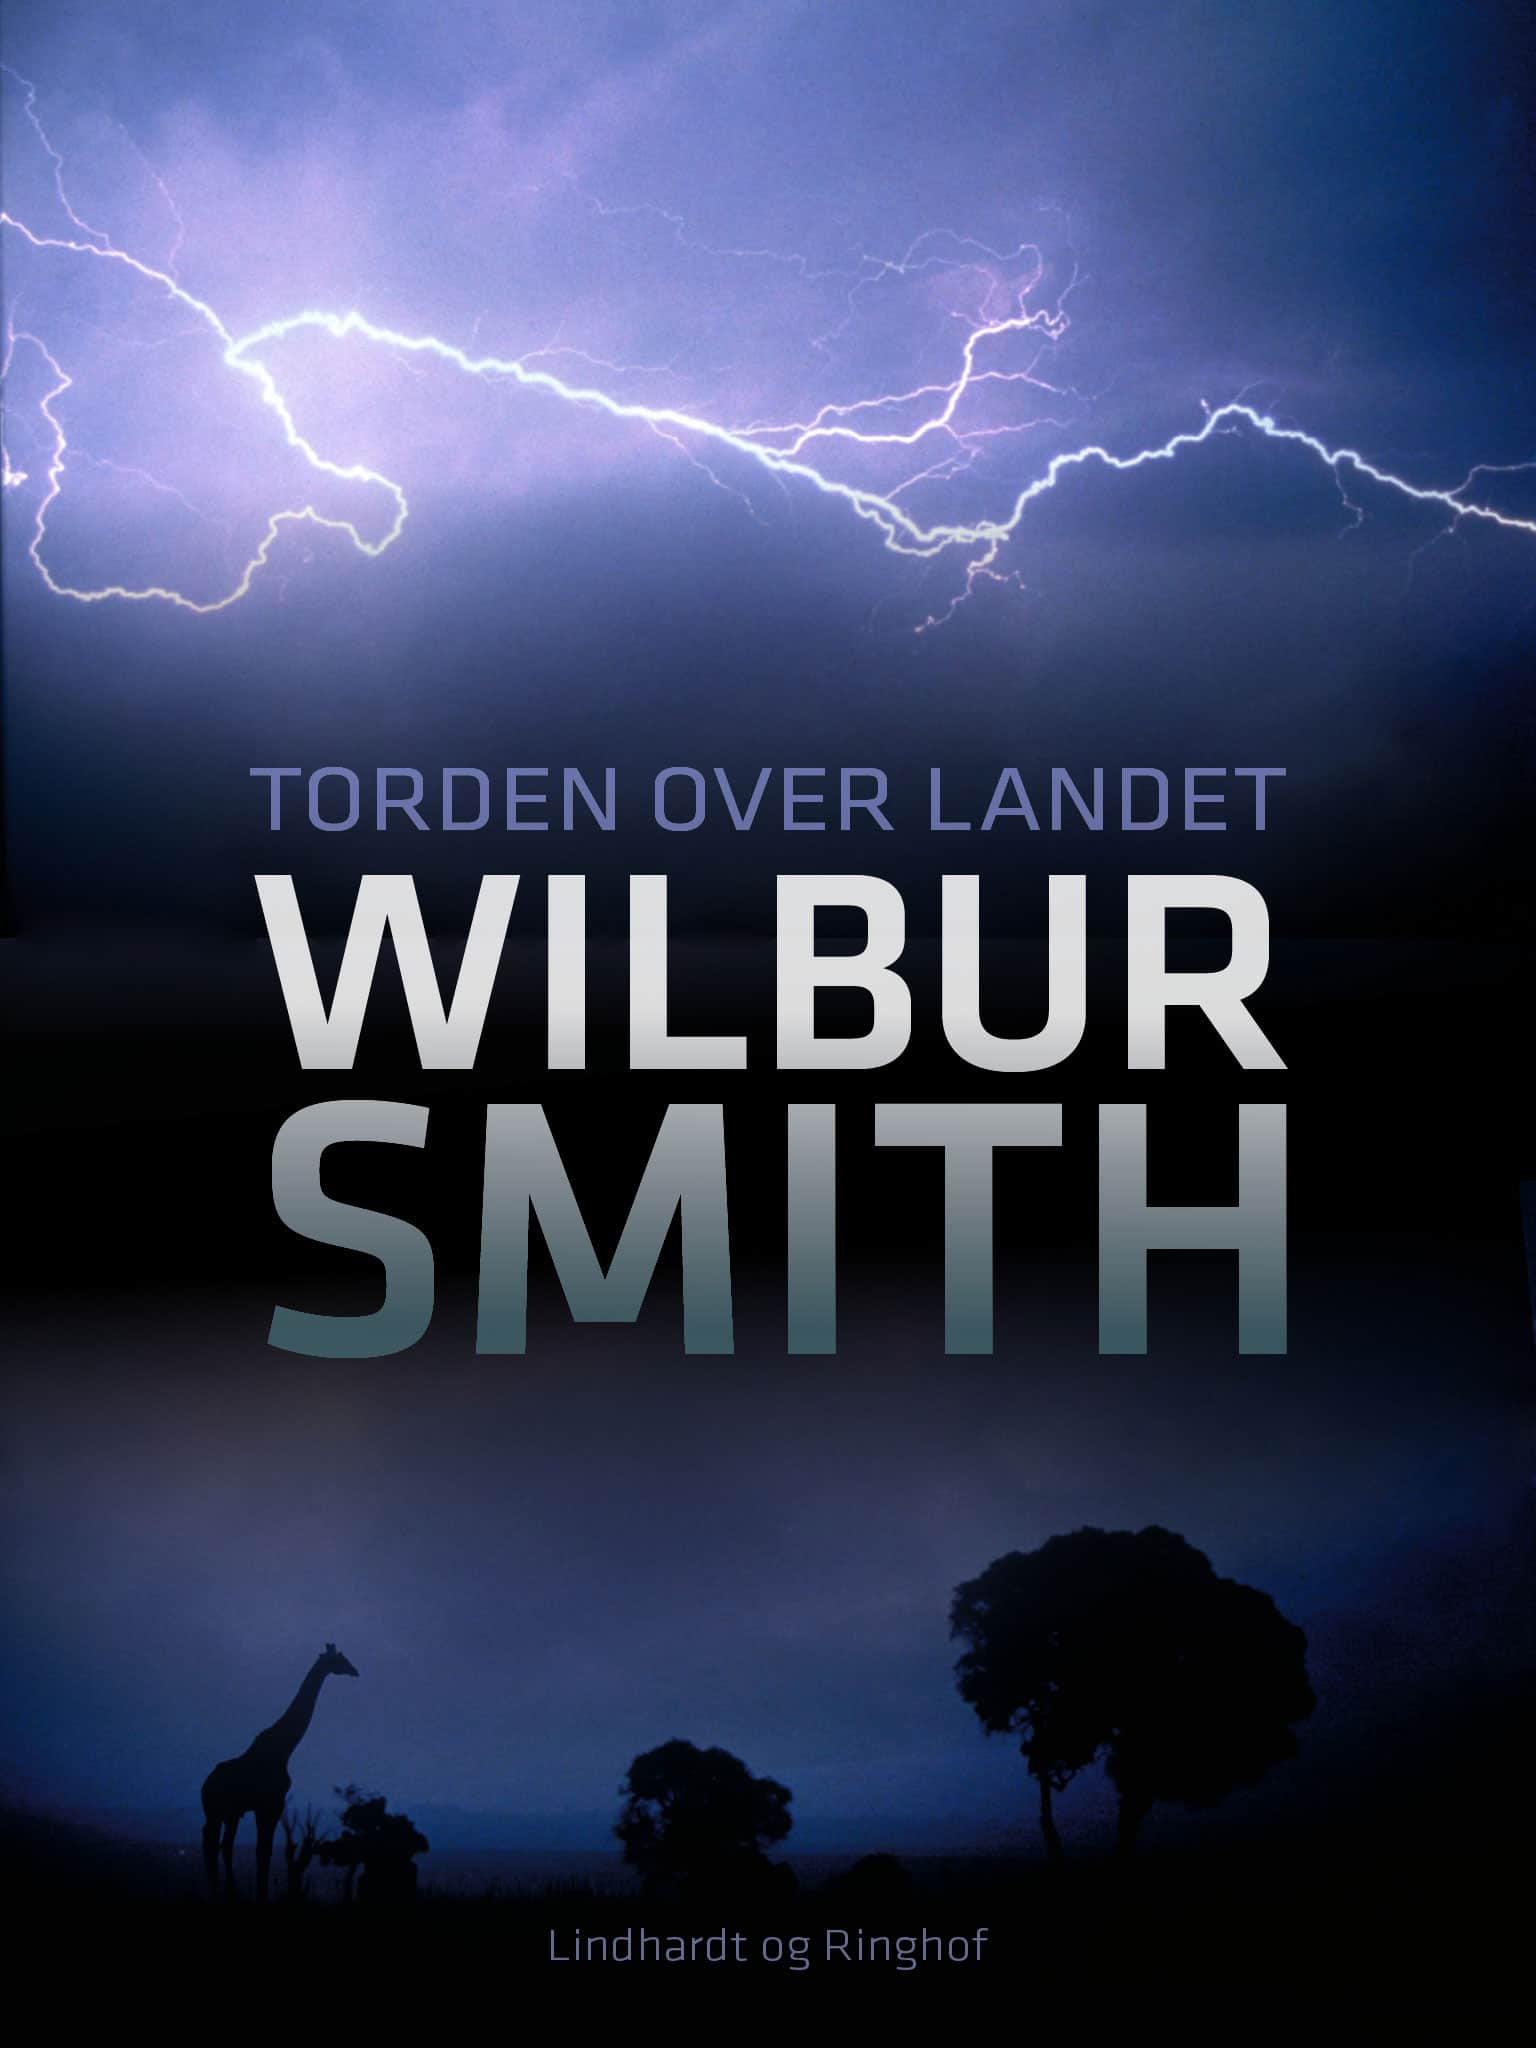 Torden over landet, Wilbur Smith, Courtney-serien